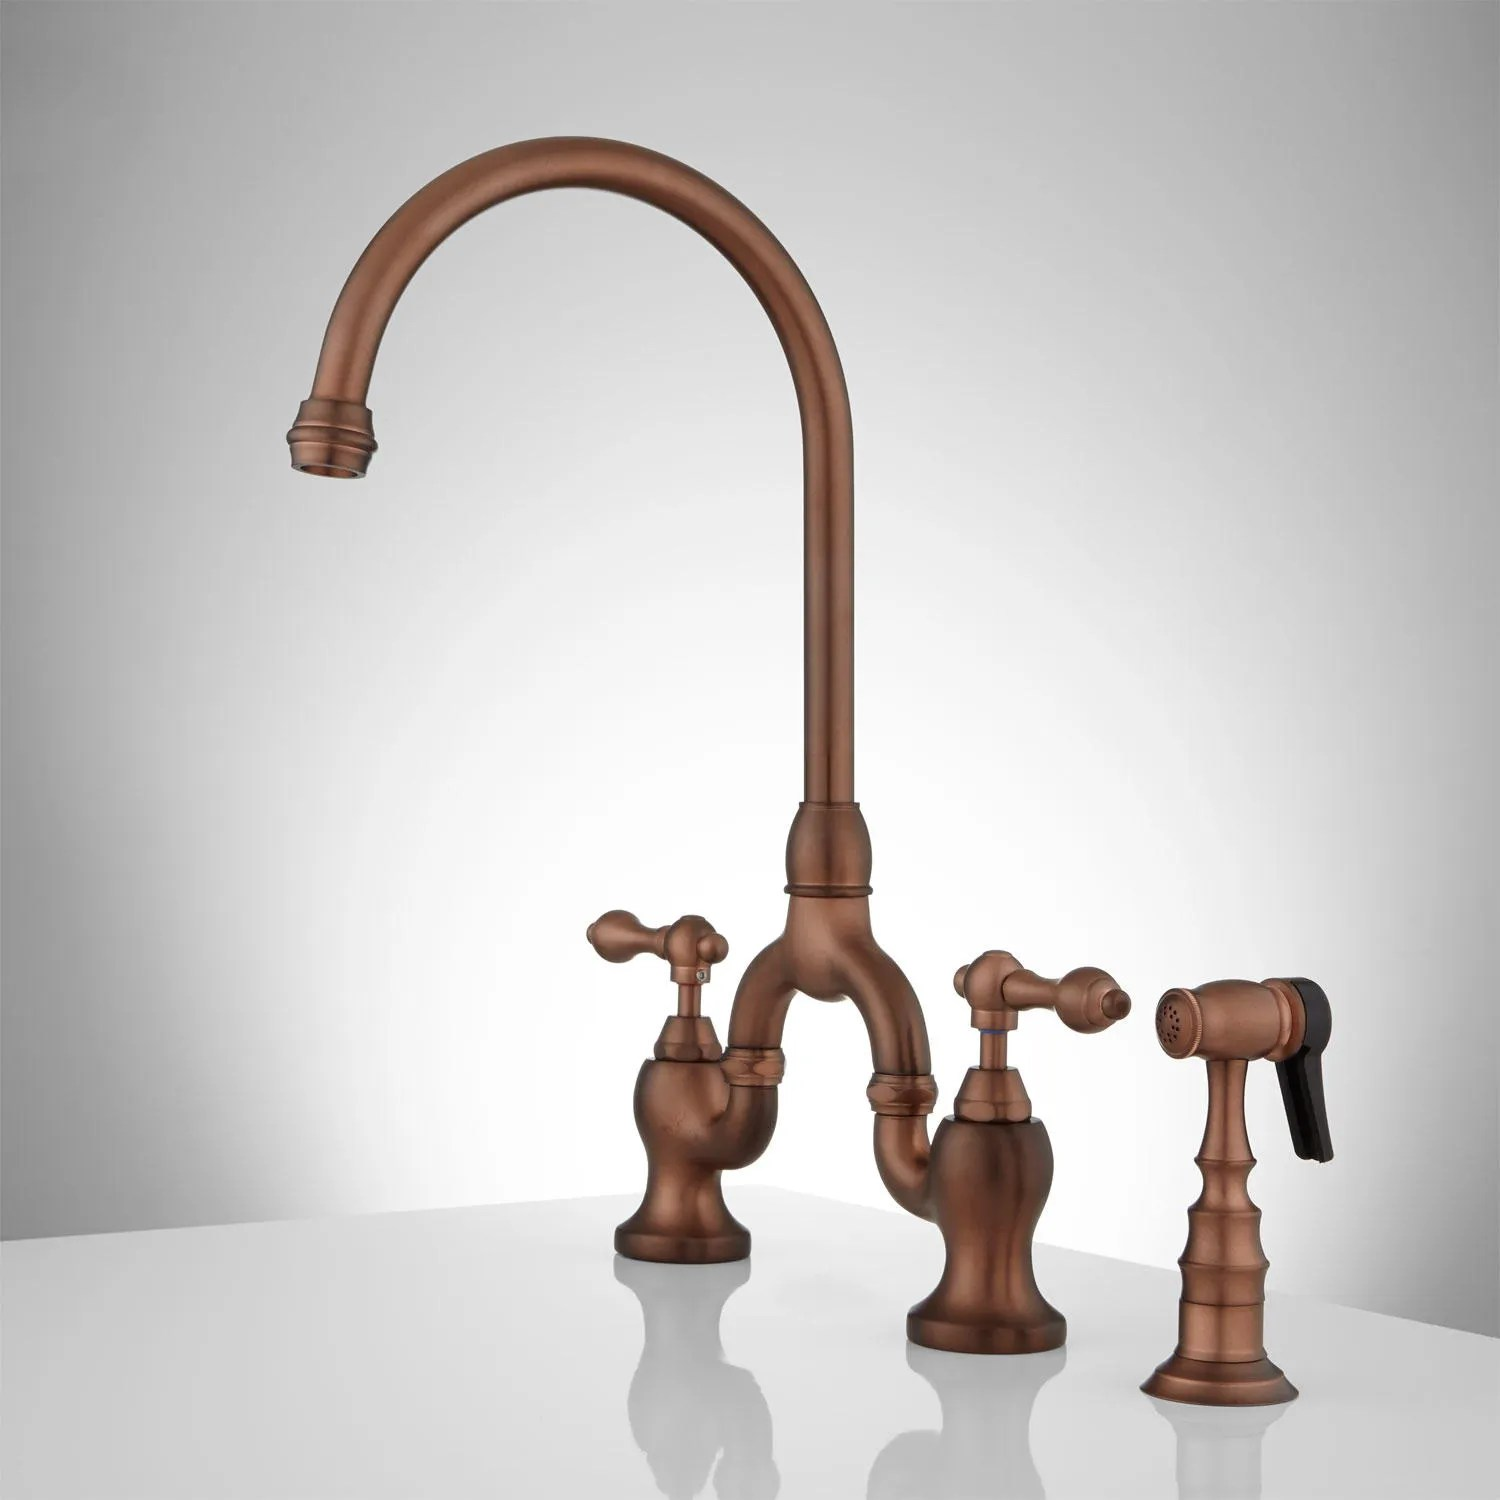 antique copper kitchen faucet wheeled island ponticello bridge with side spray lever